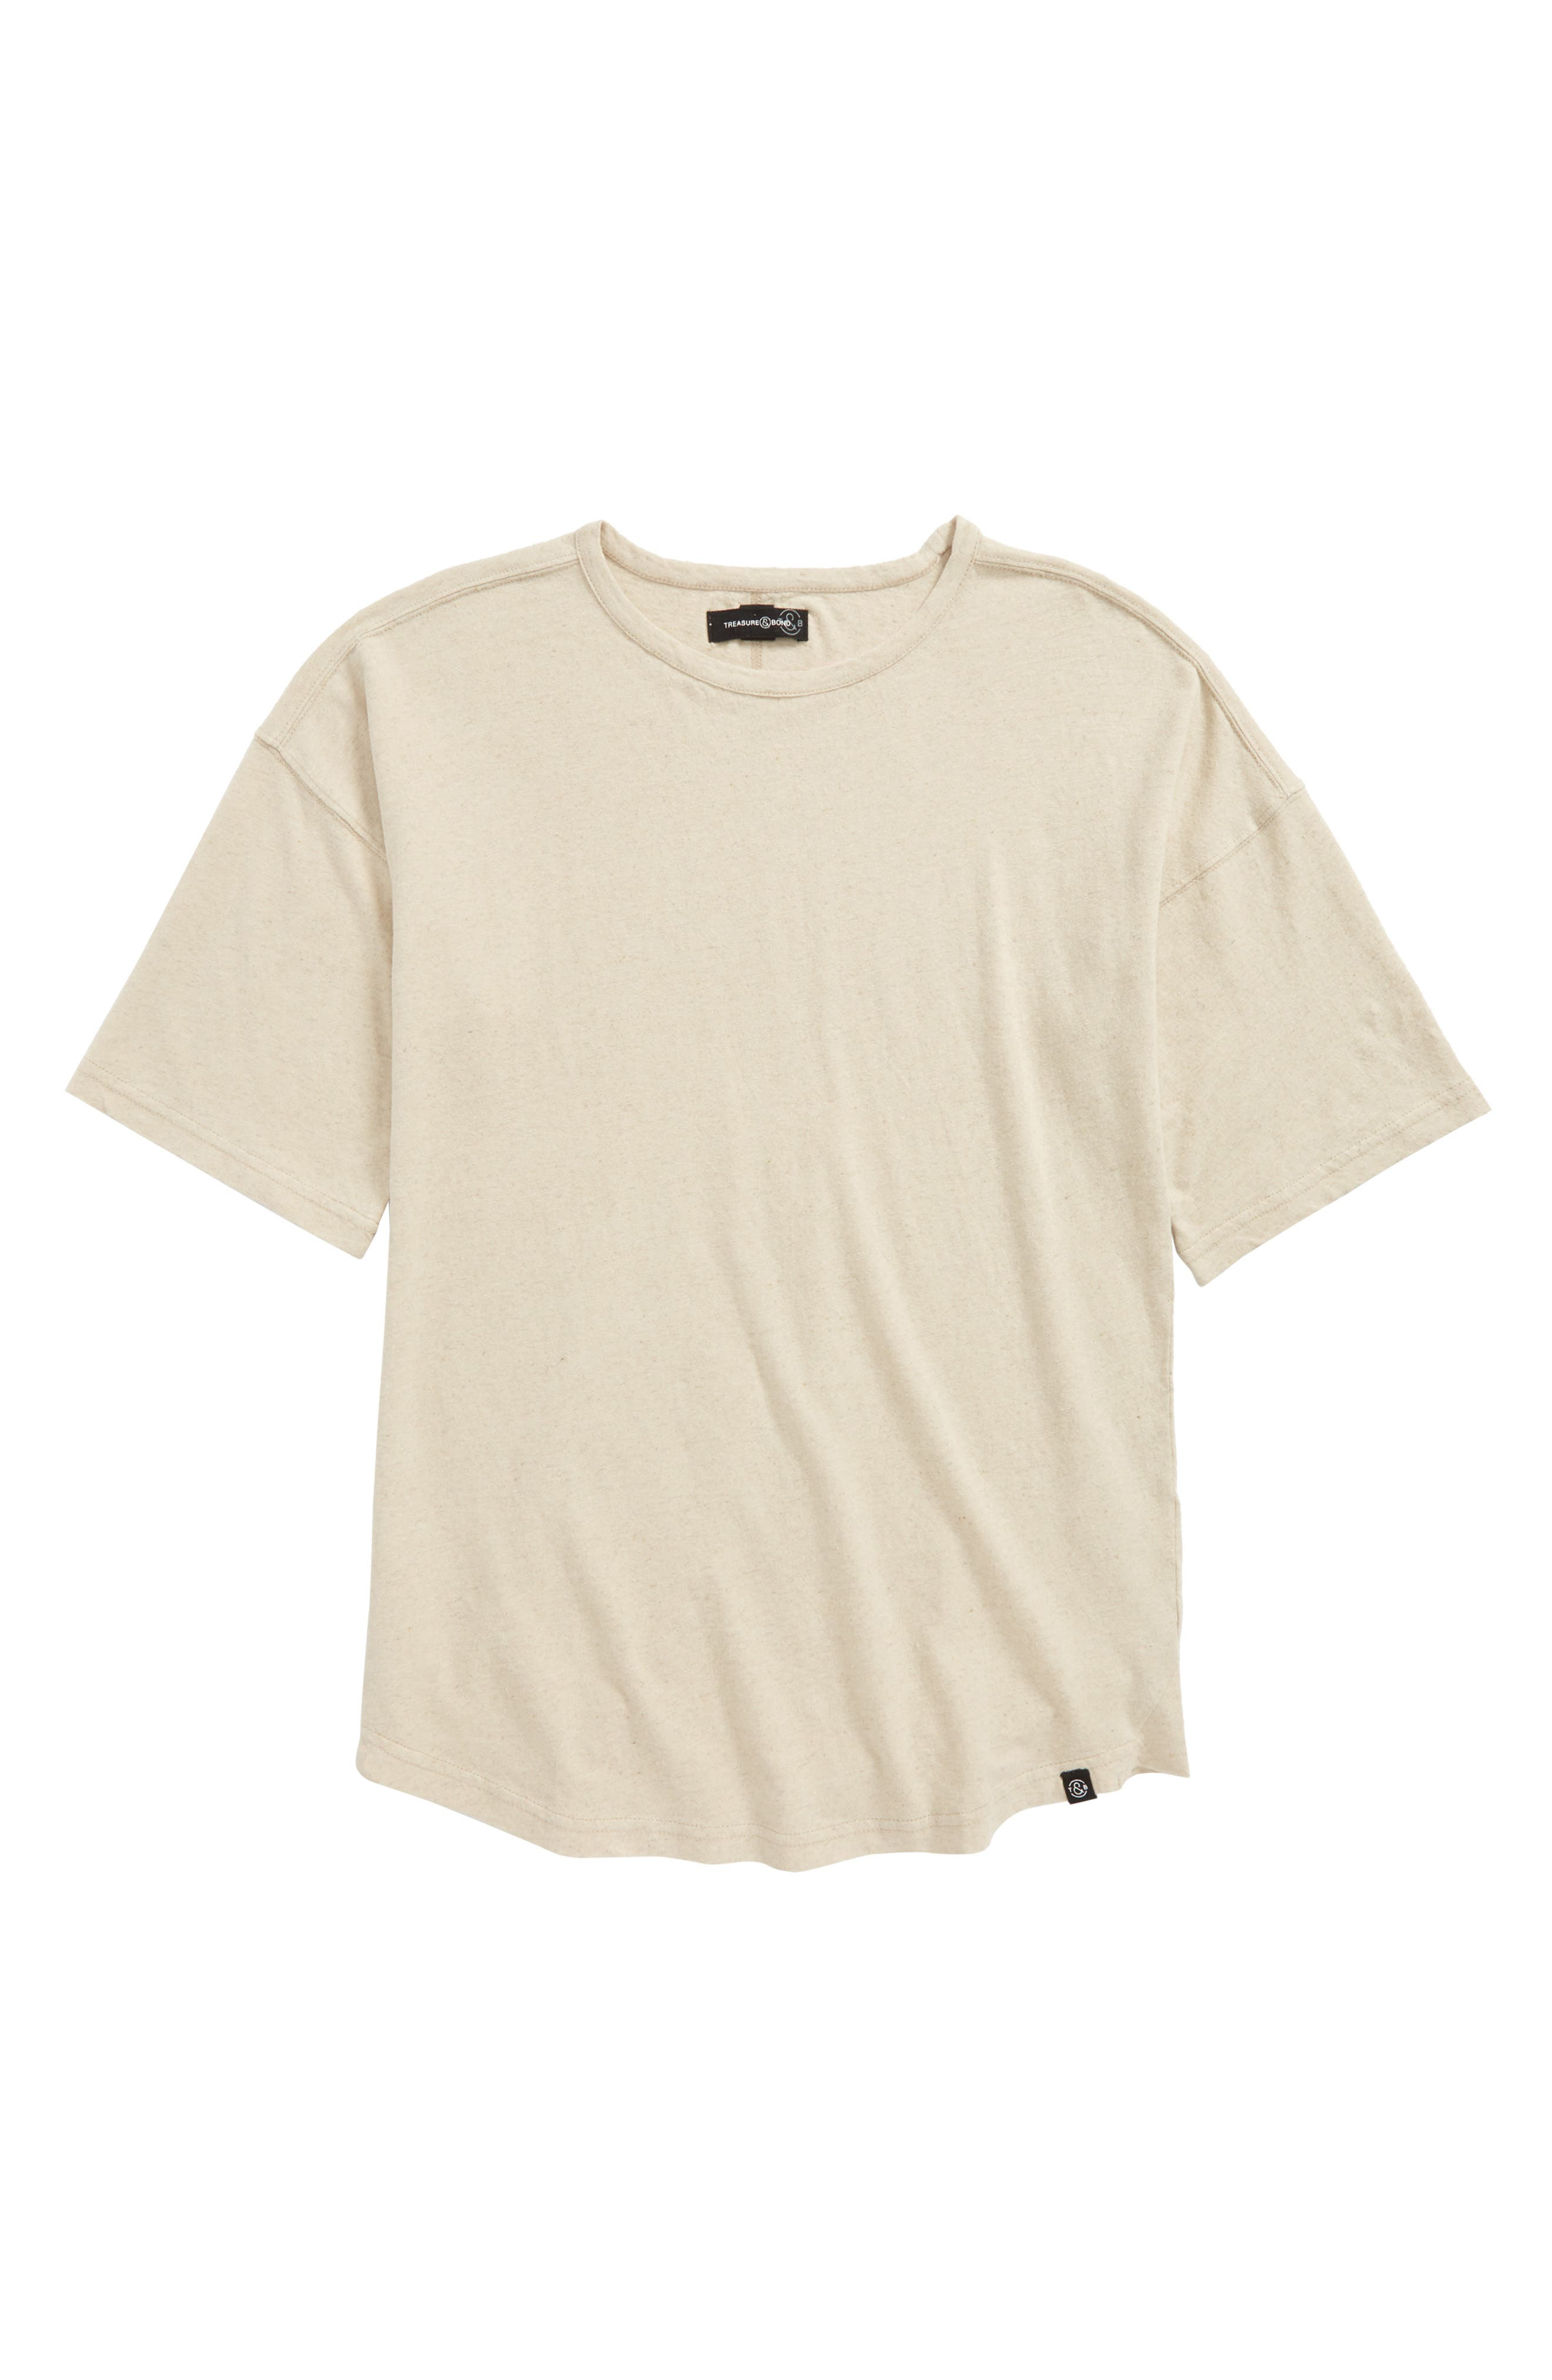 Dropped Shoulder Shirt,                         Main,                         color, Beige Moth